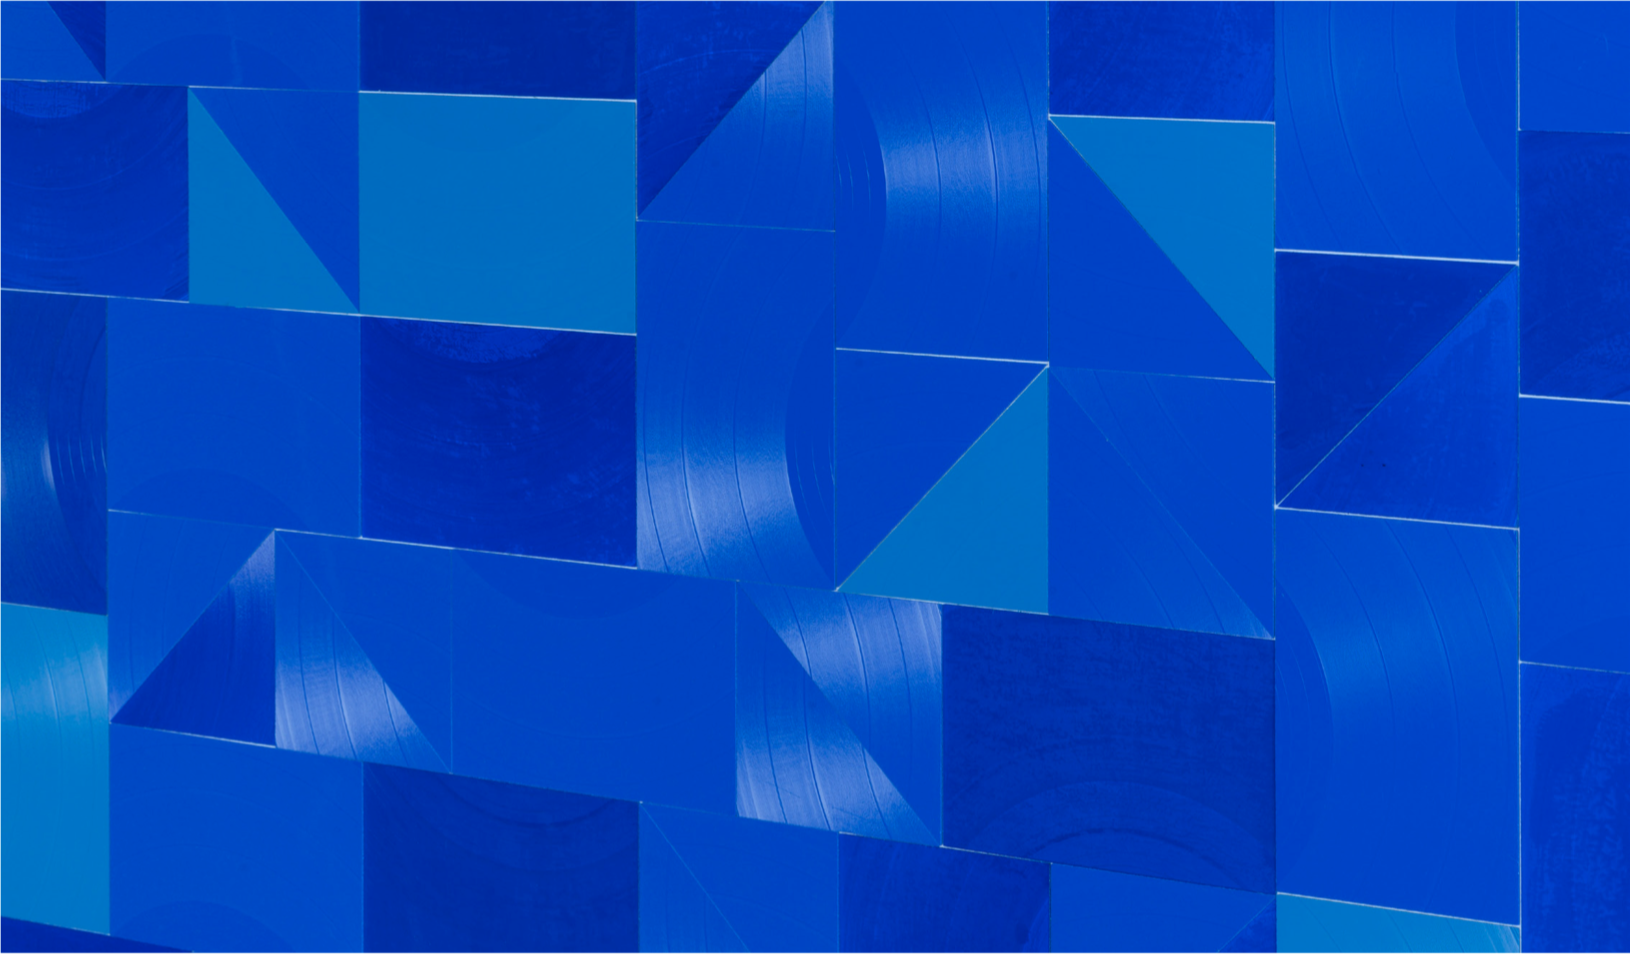 Ins Blaue  (detail), 2018. Cut vinyl records, acrylic, canvas, wood 192 x 140 x 4.1 cm | 75.6 x 55.1 x 1.6 in Courtesy of the artist and Perrotin.